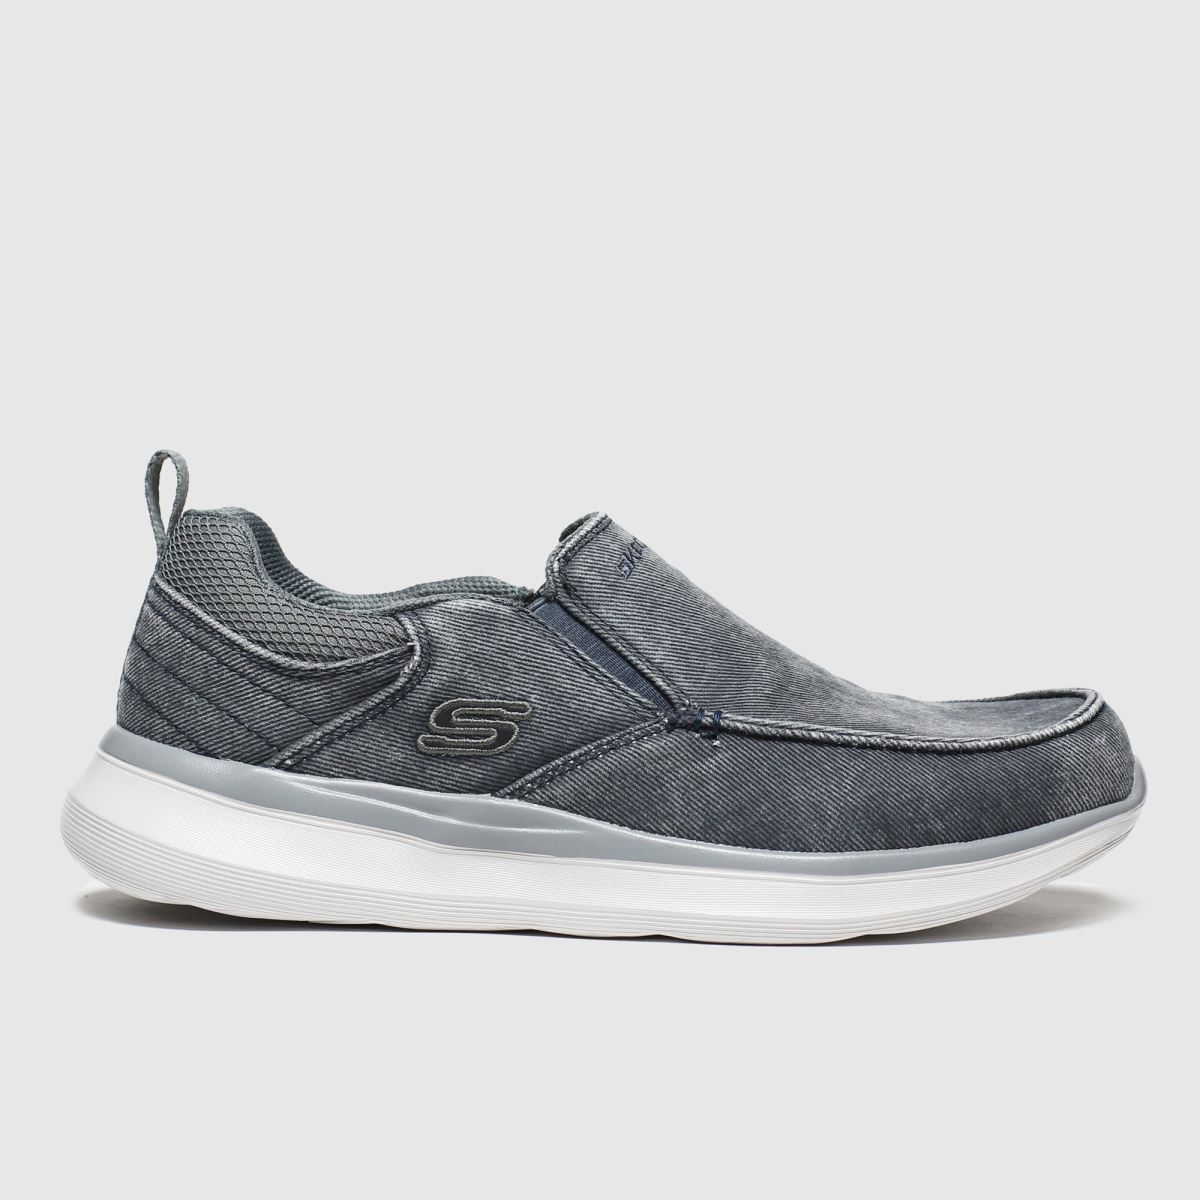 Skechers Grey Delson Slip Trainers